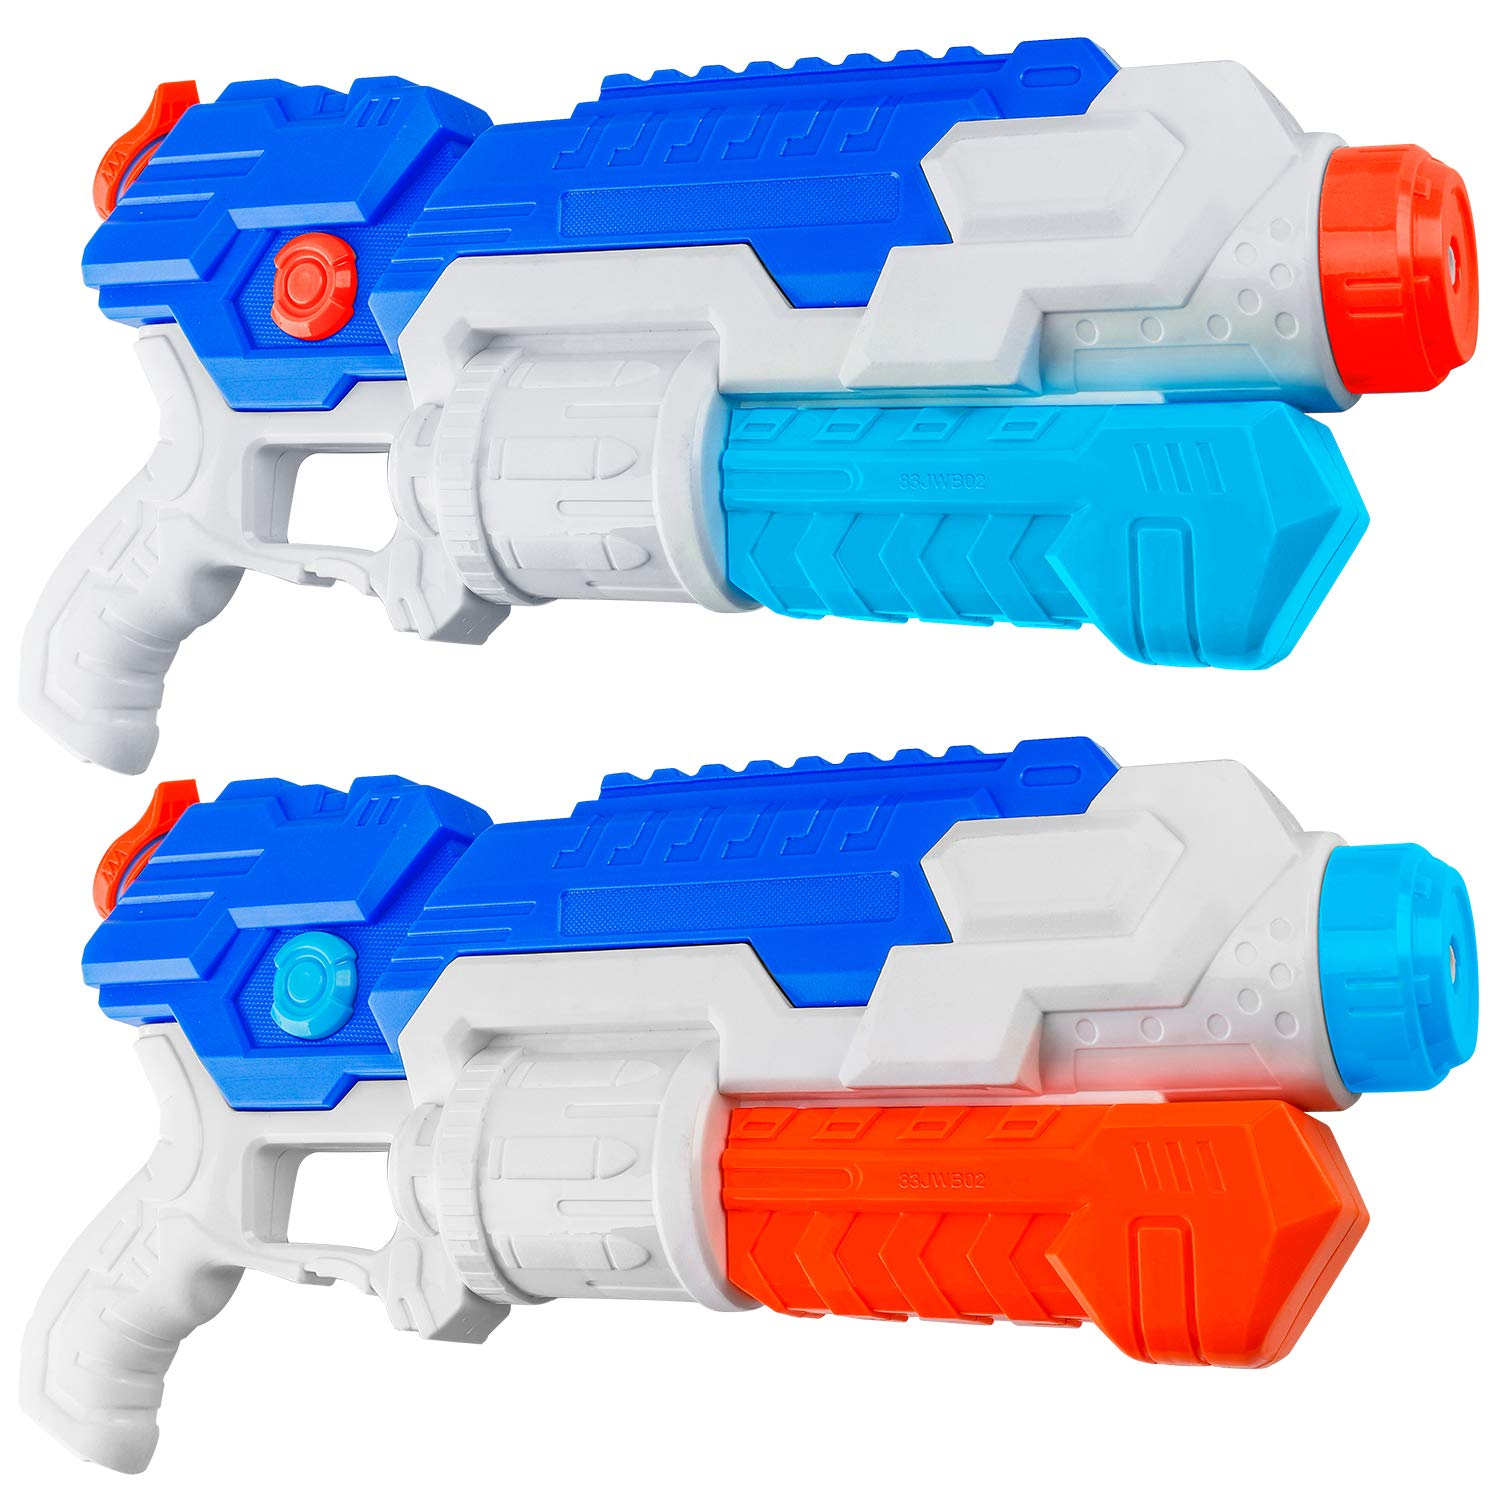 HD JUNTUNKOR Super Soaker Water Gun for Kids, 2 Pack Squirt Guns for Adults 40 Ft Long Range Water Soakers Blaster for Teens Beach Swimming Pool Water Fighting Toy - 800CC Capacity by HD JUNTUNKOR